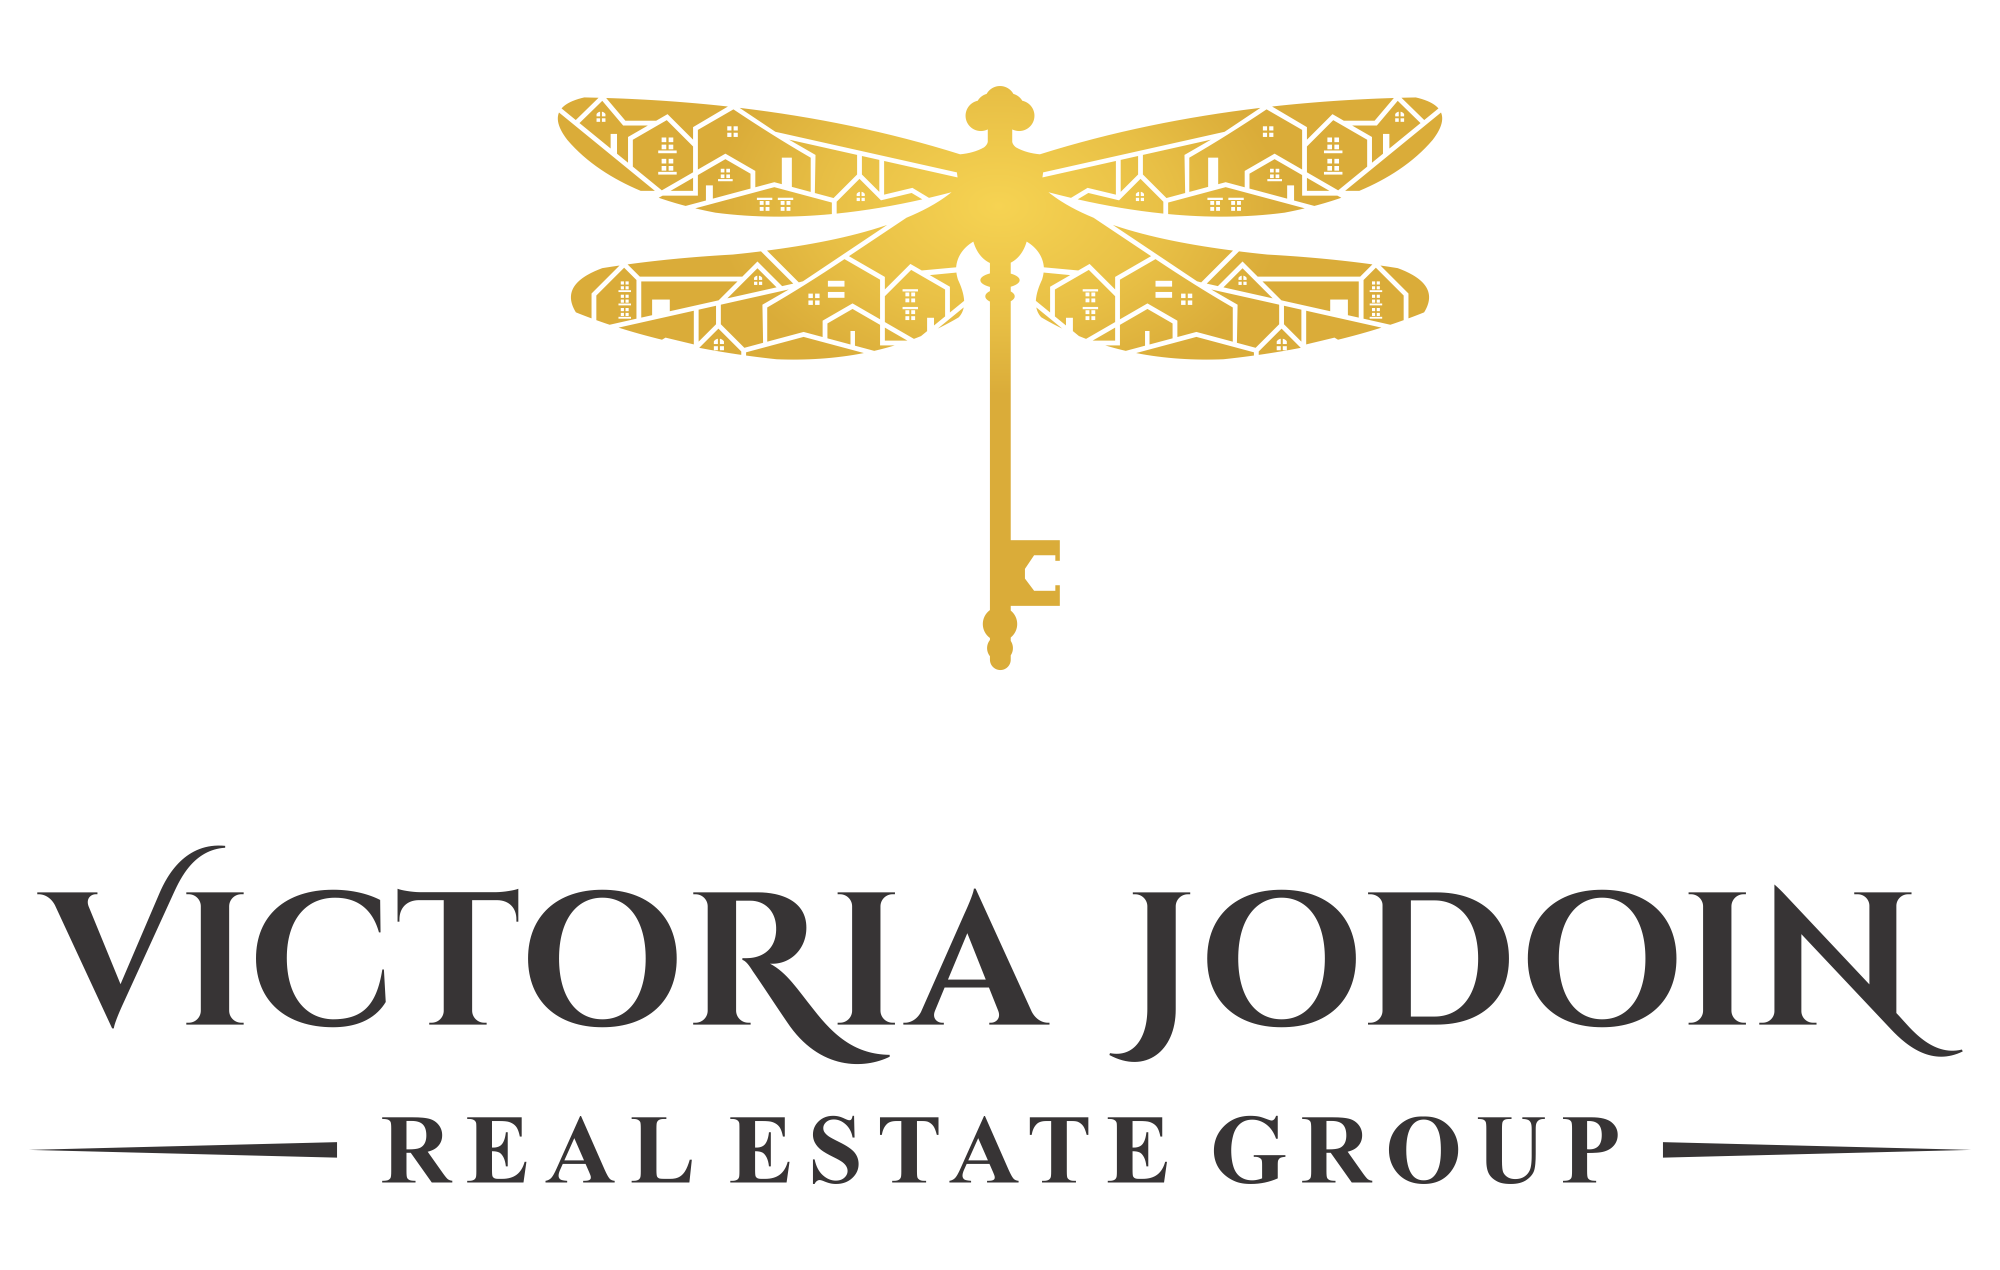 Luxurious, Sophisticated,  Memorable, Real Estate logo and brand